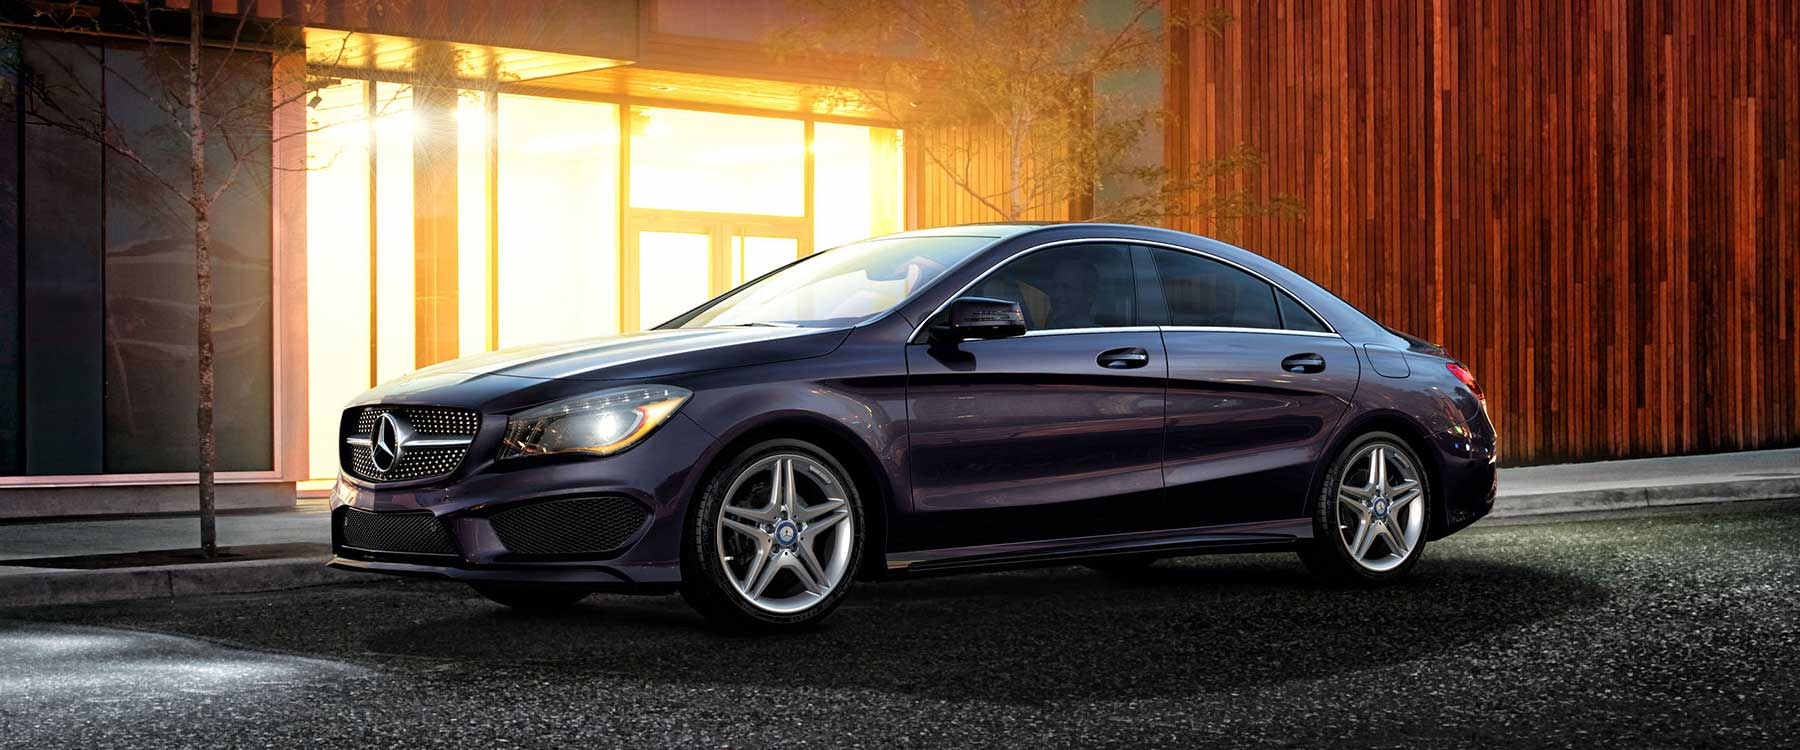 Discover The 2017 Mercedes Benz Cla 250 Coupe In Las Vegas